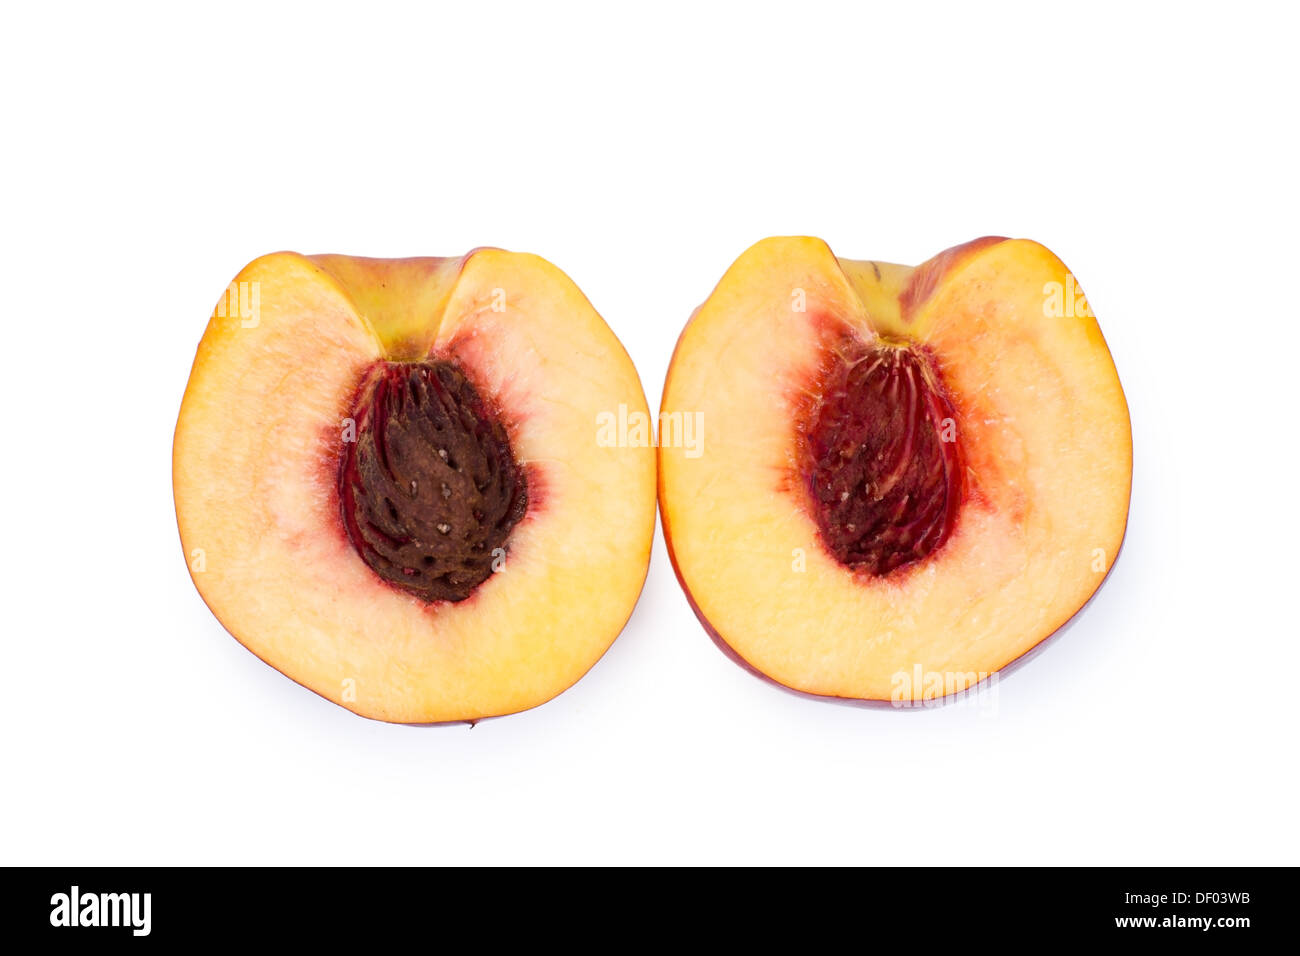 Overhead view of the two halves of a halved juicy ripe nectarine showing the texture of the flesh and pip, isolated Stock Photo